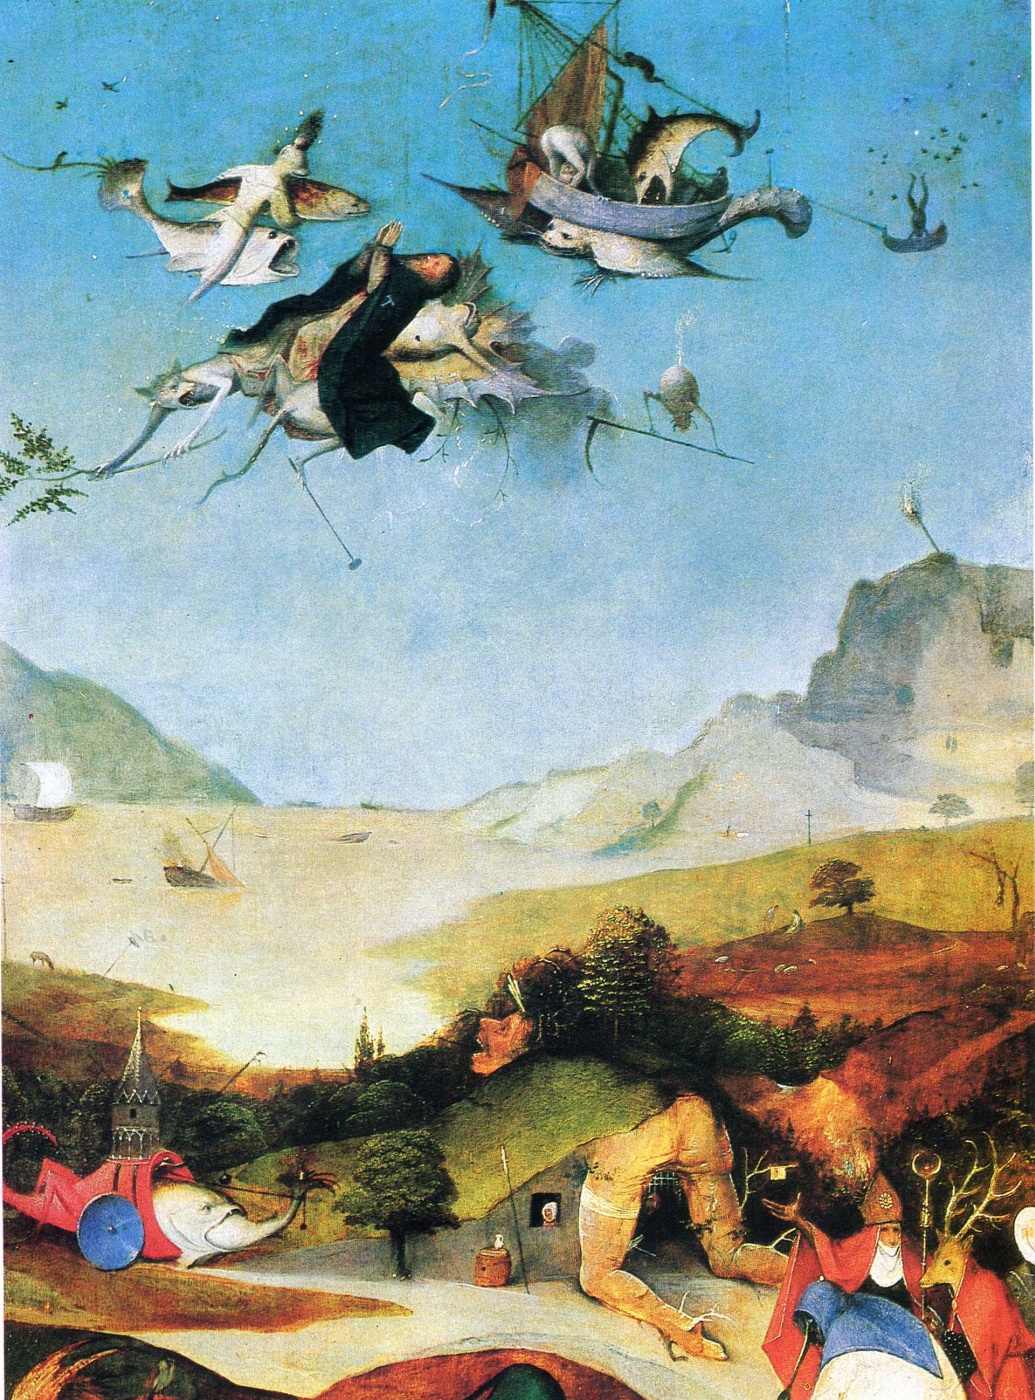 Hieronymus Bosch. The Temptation Of St. Anthony. Left wing of a triptych. Fragment